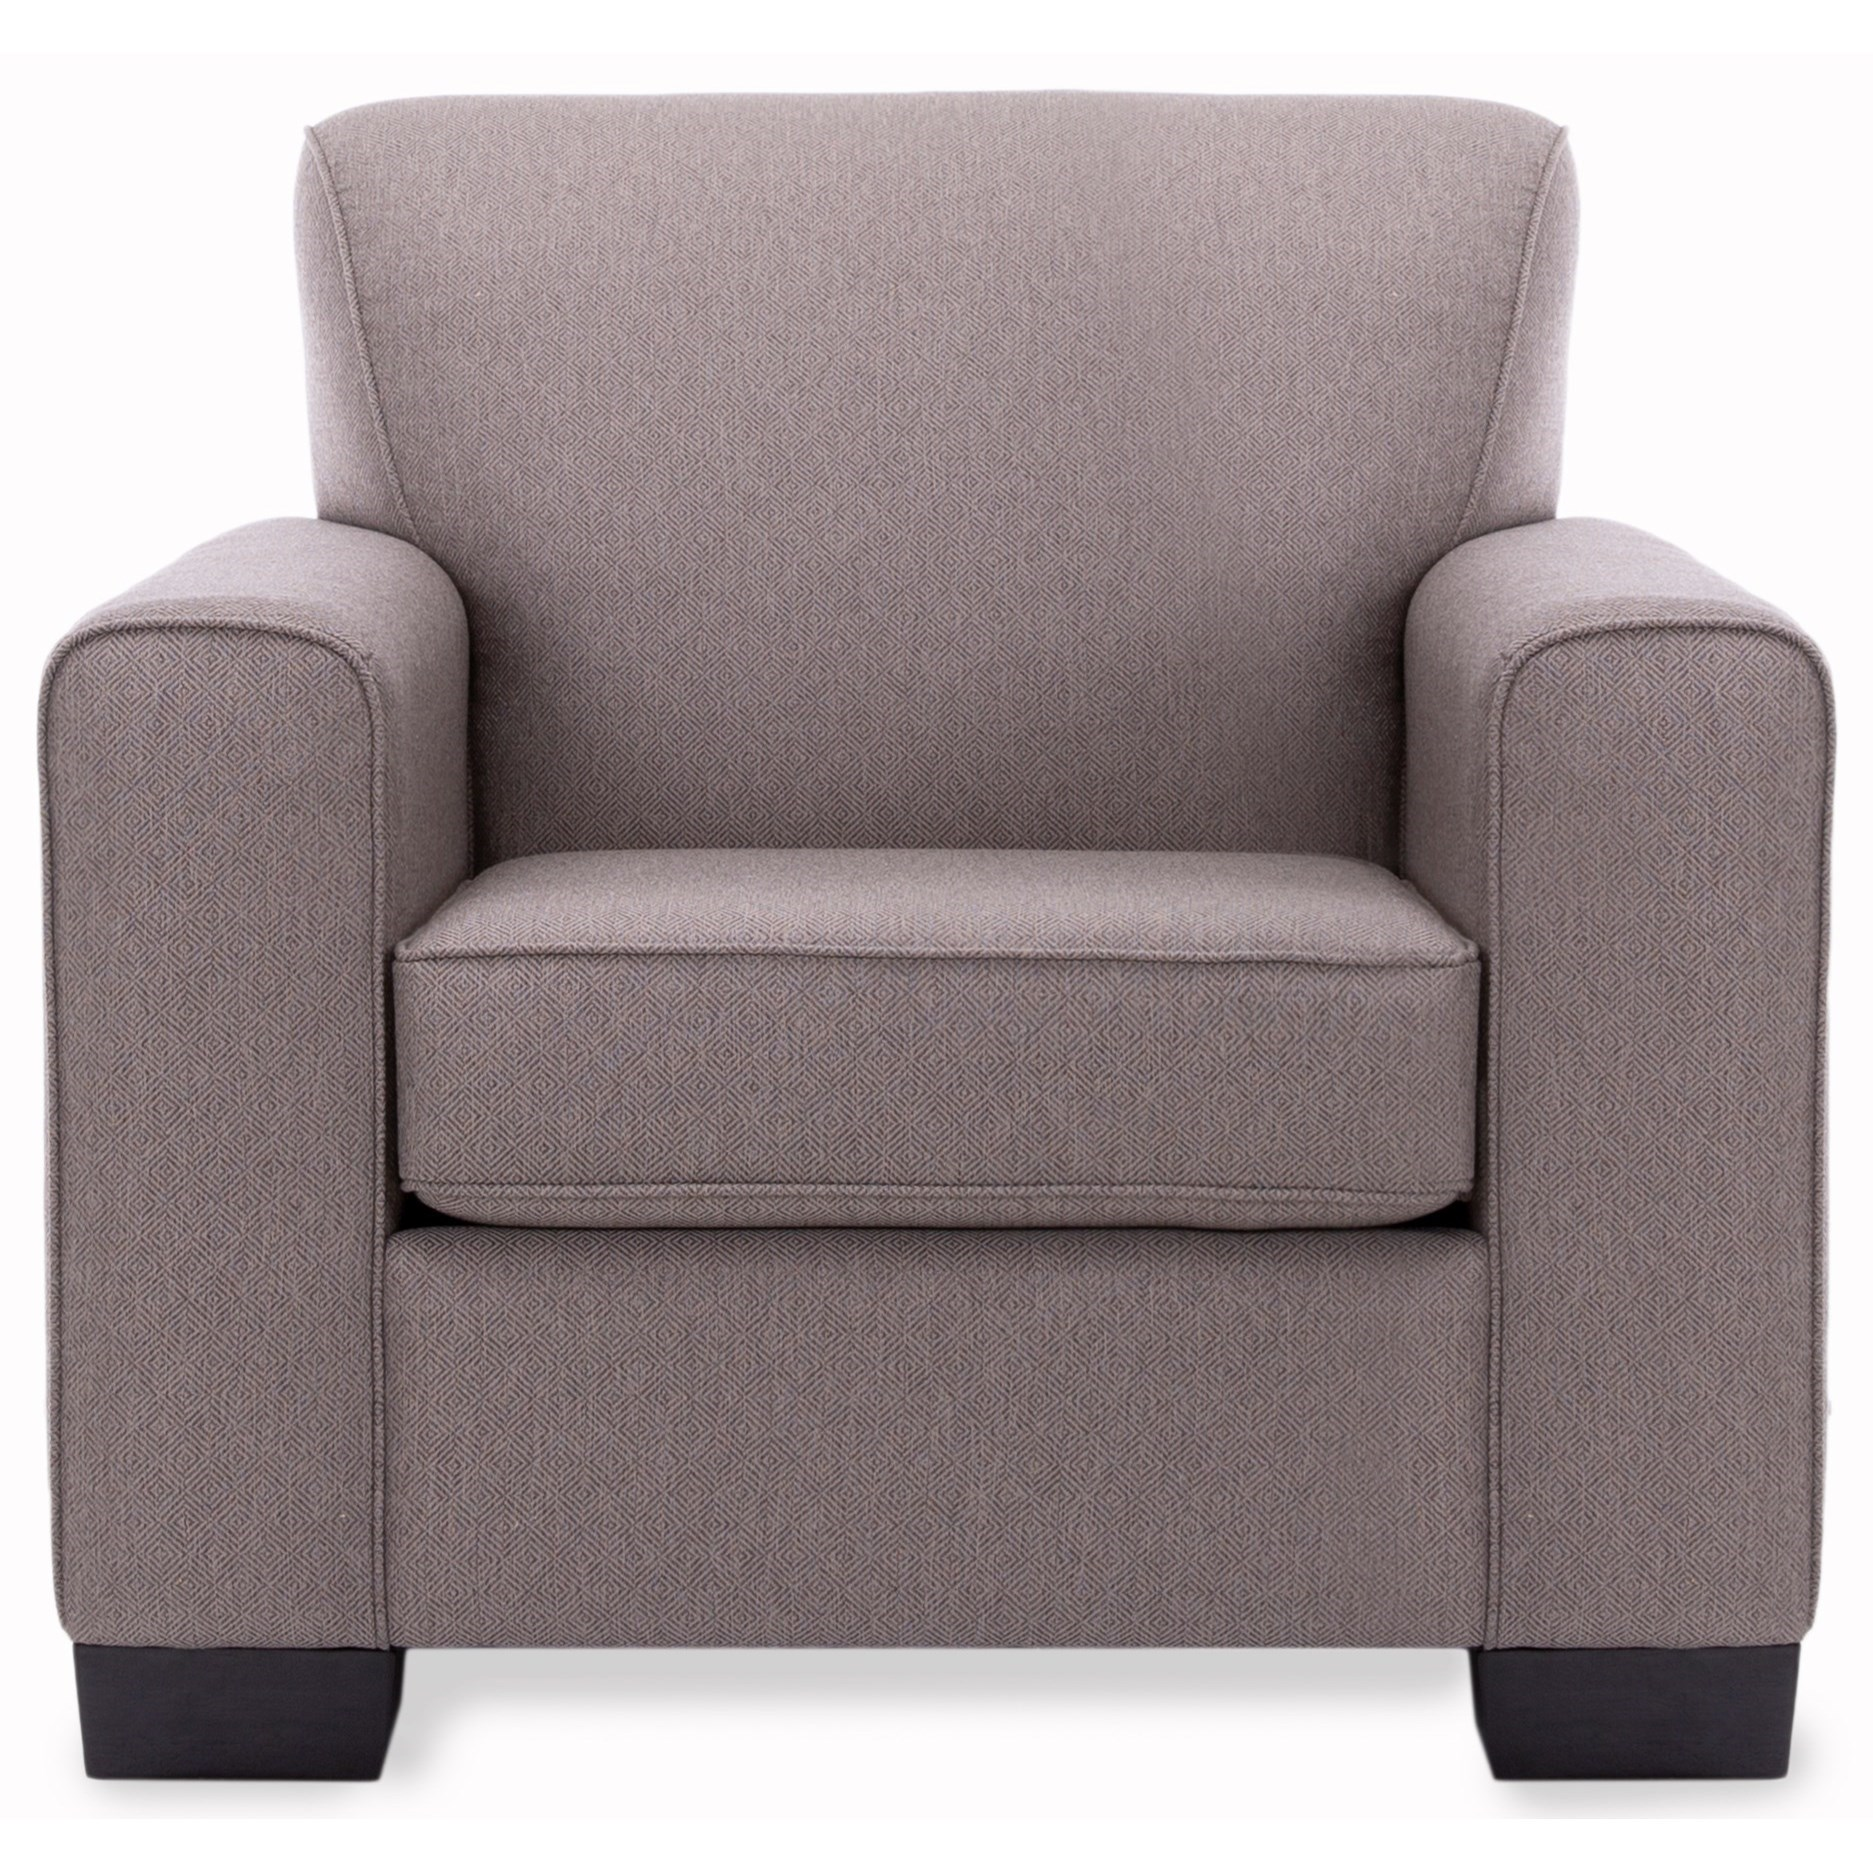 2805 Chair by Decor-Rest at Reid's Furniture